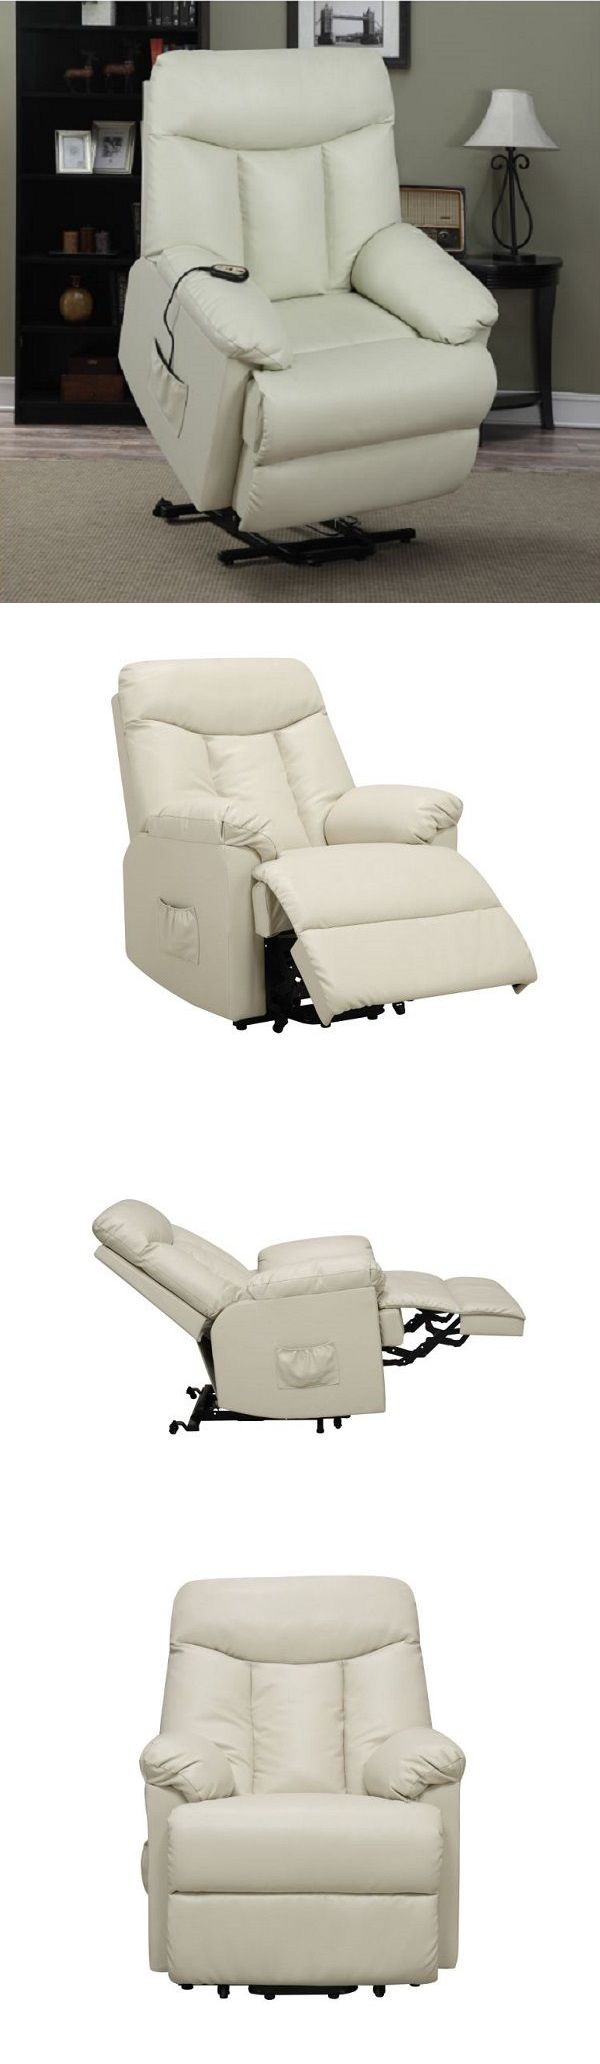 Stairlifts and Elevators: Power Lift Recliners Electric Remote Medical Seat Wall Hugger Lazy Boy Chair -> BUY IT NOW ONLY: $1575.97 on eBay!